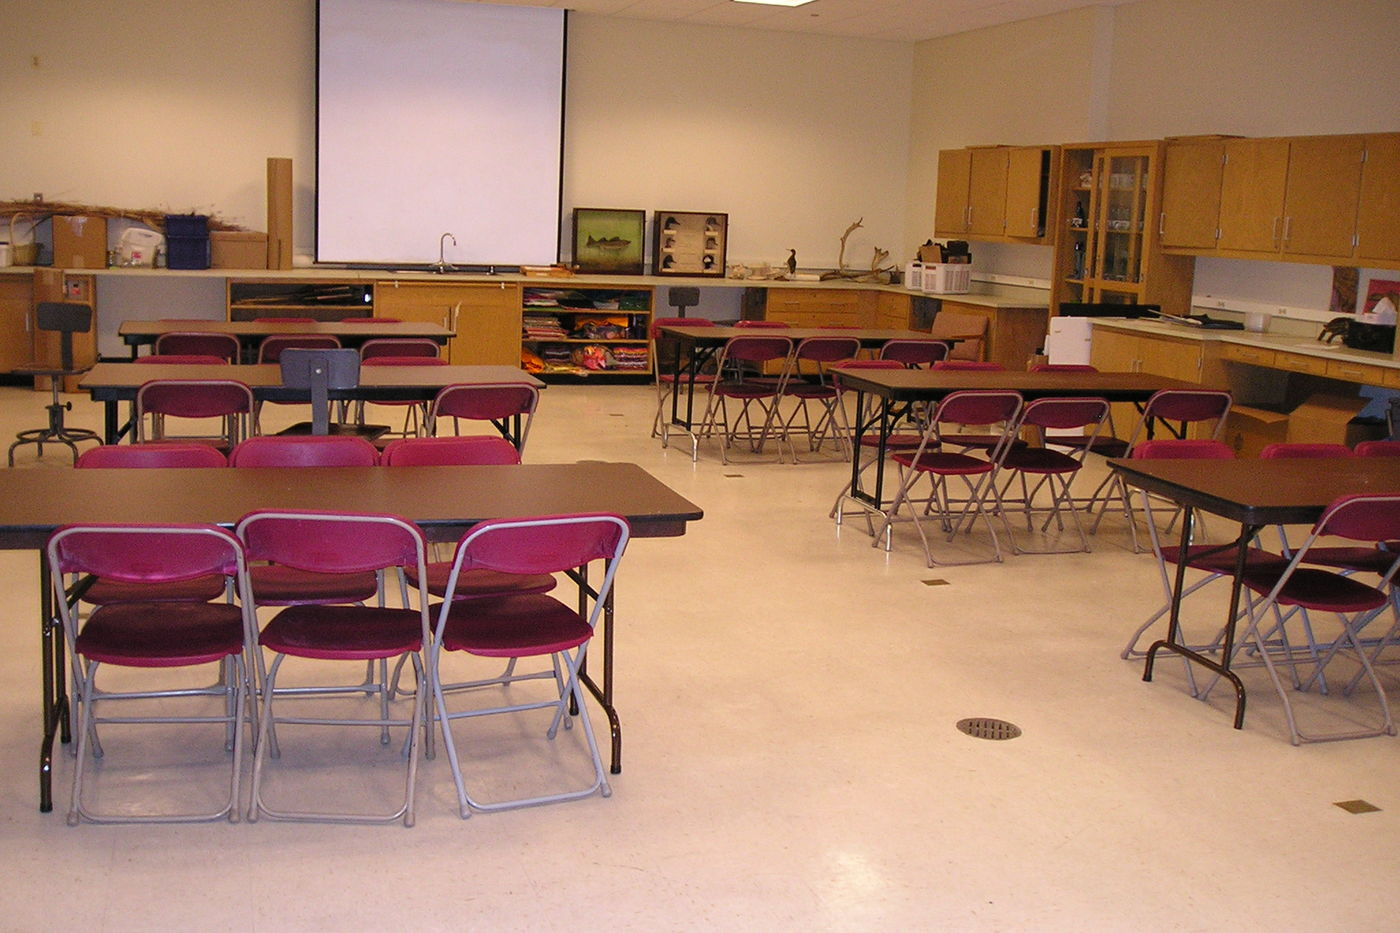 A view of Classroom B. Six desks are arranged in two rows, facing a projector on the wall in the front of the room. Each table seats six guests. Counters and cabinets line the walls of the room.